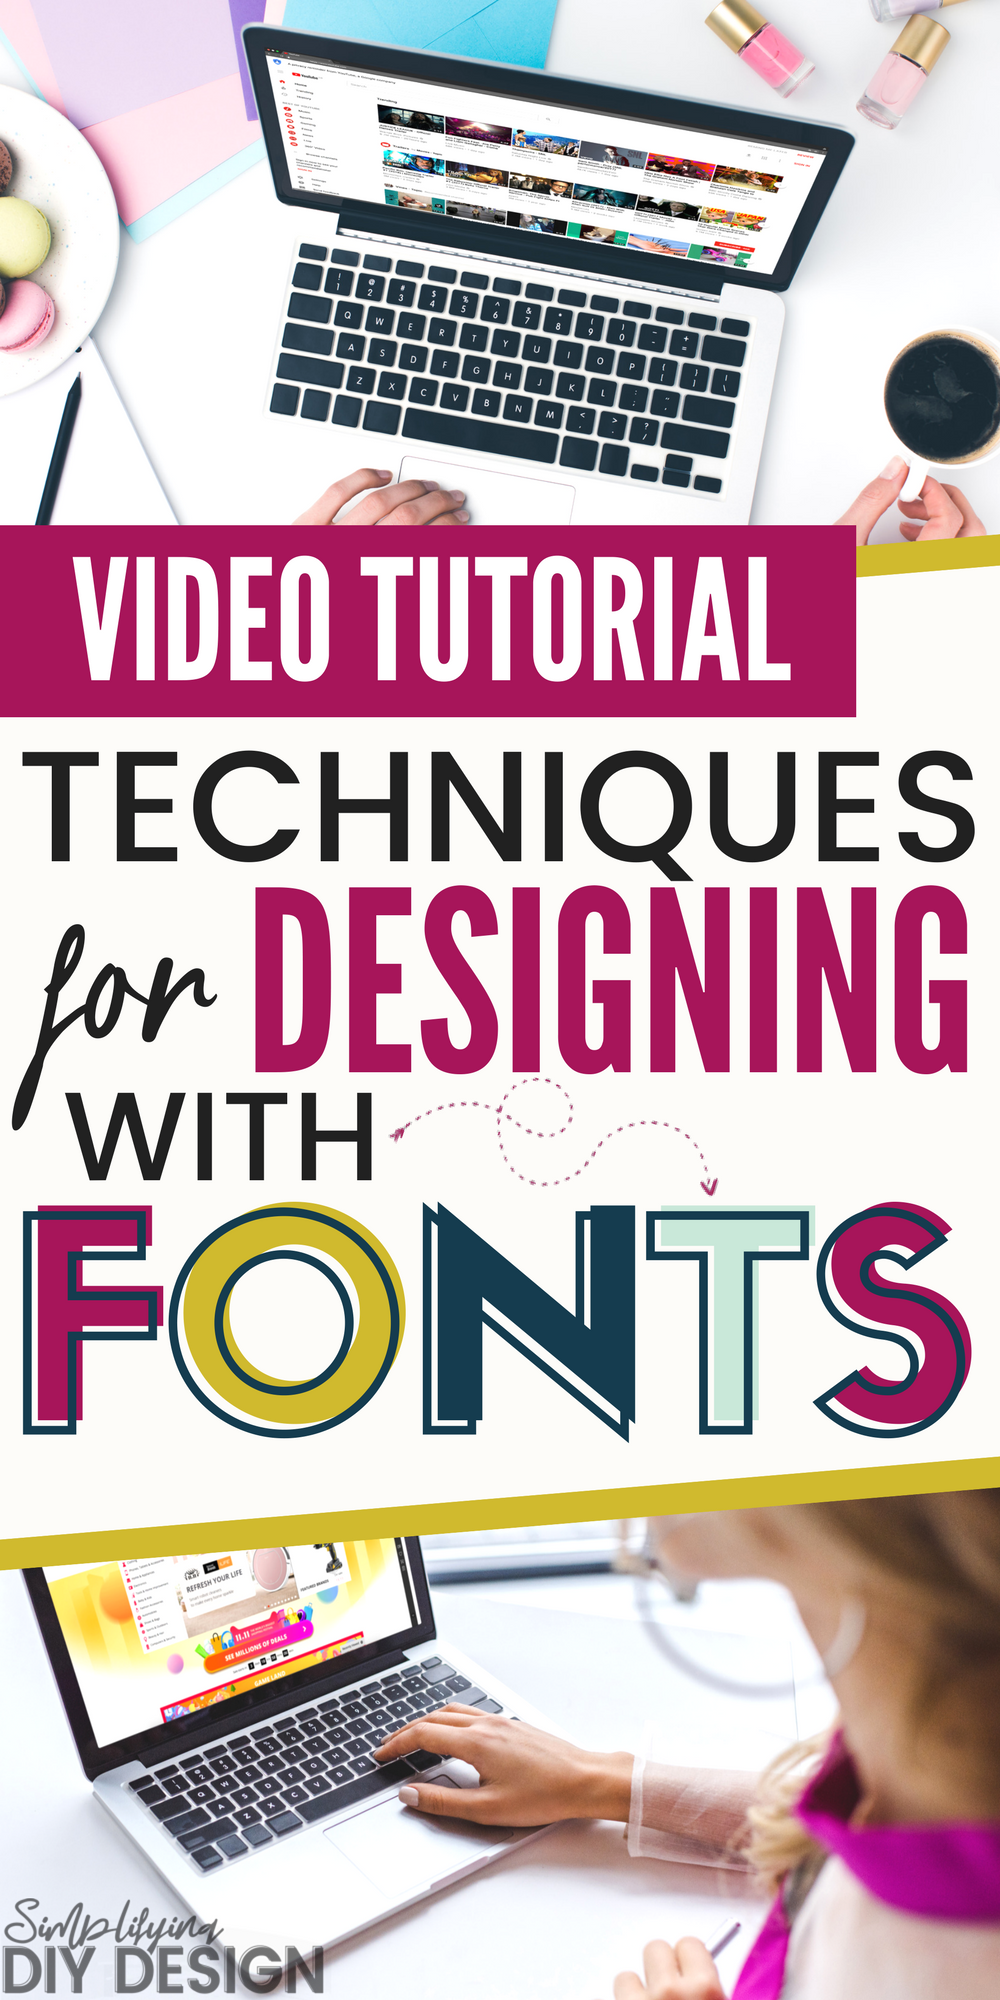 Title of image: Techniques for designing with fonts